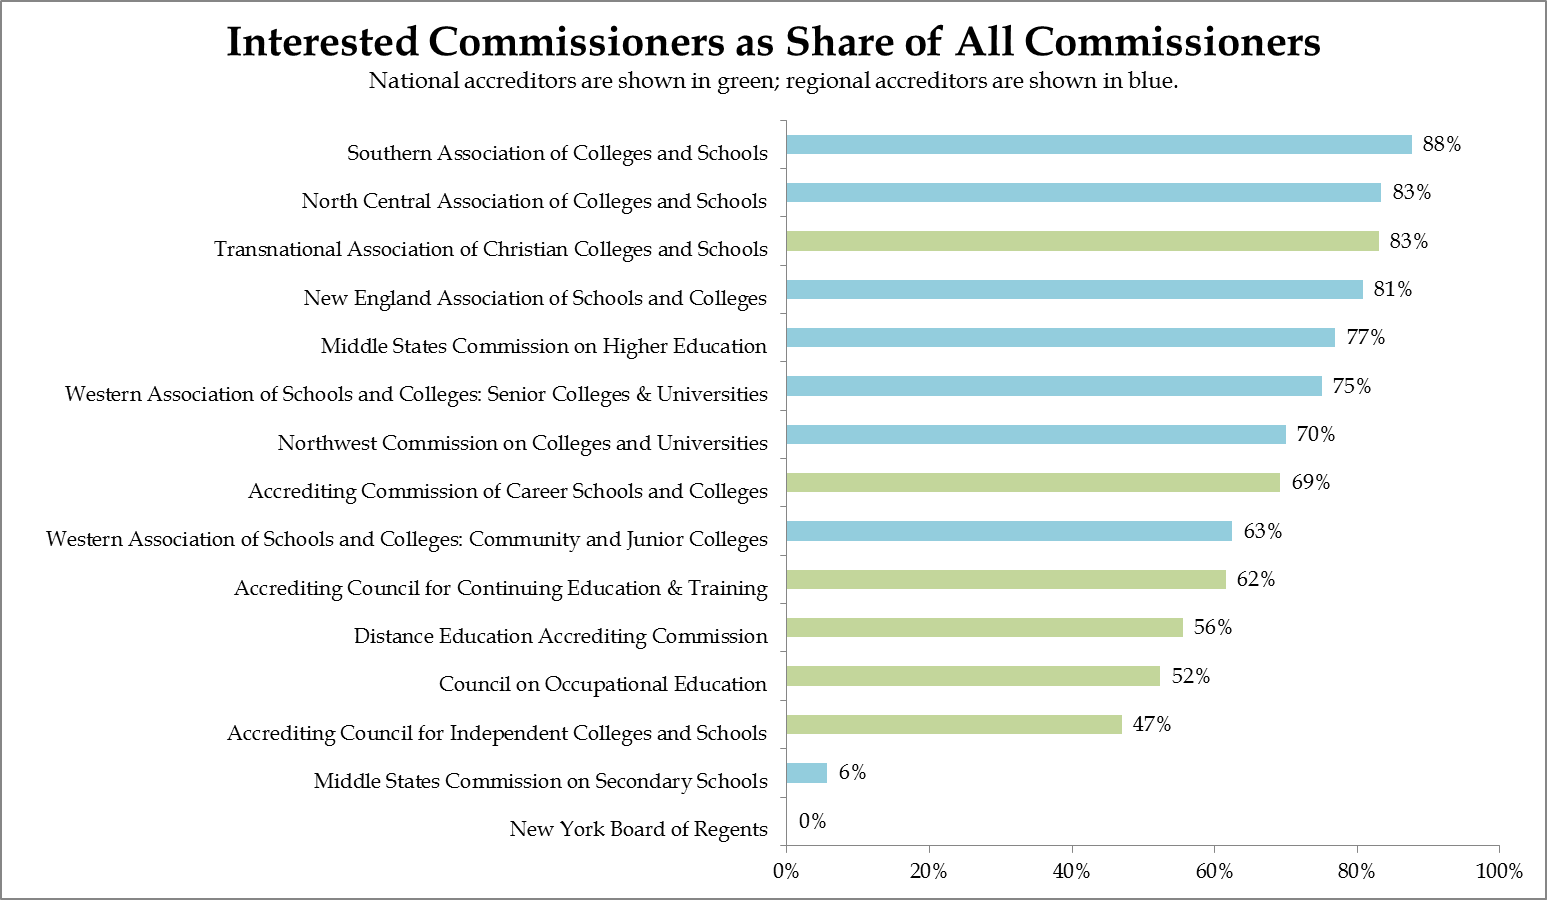 examining accreditation commissioners conflicts of interest  latest on economics regulations